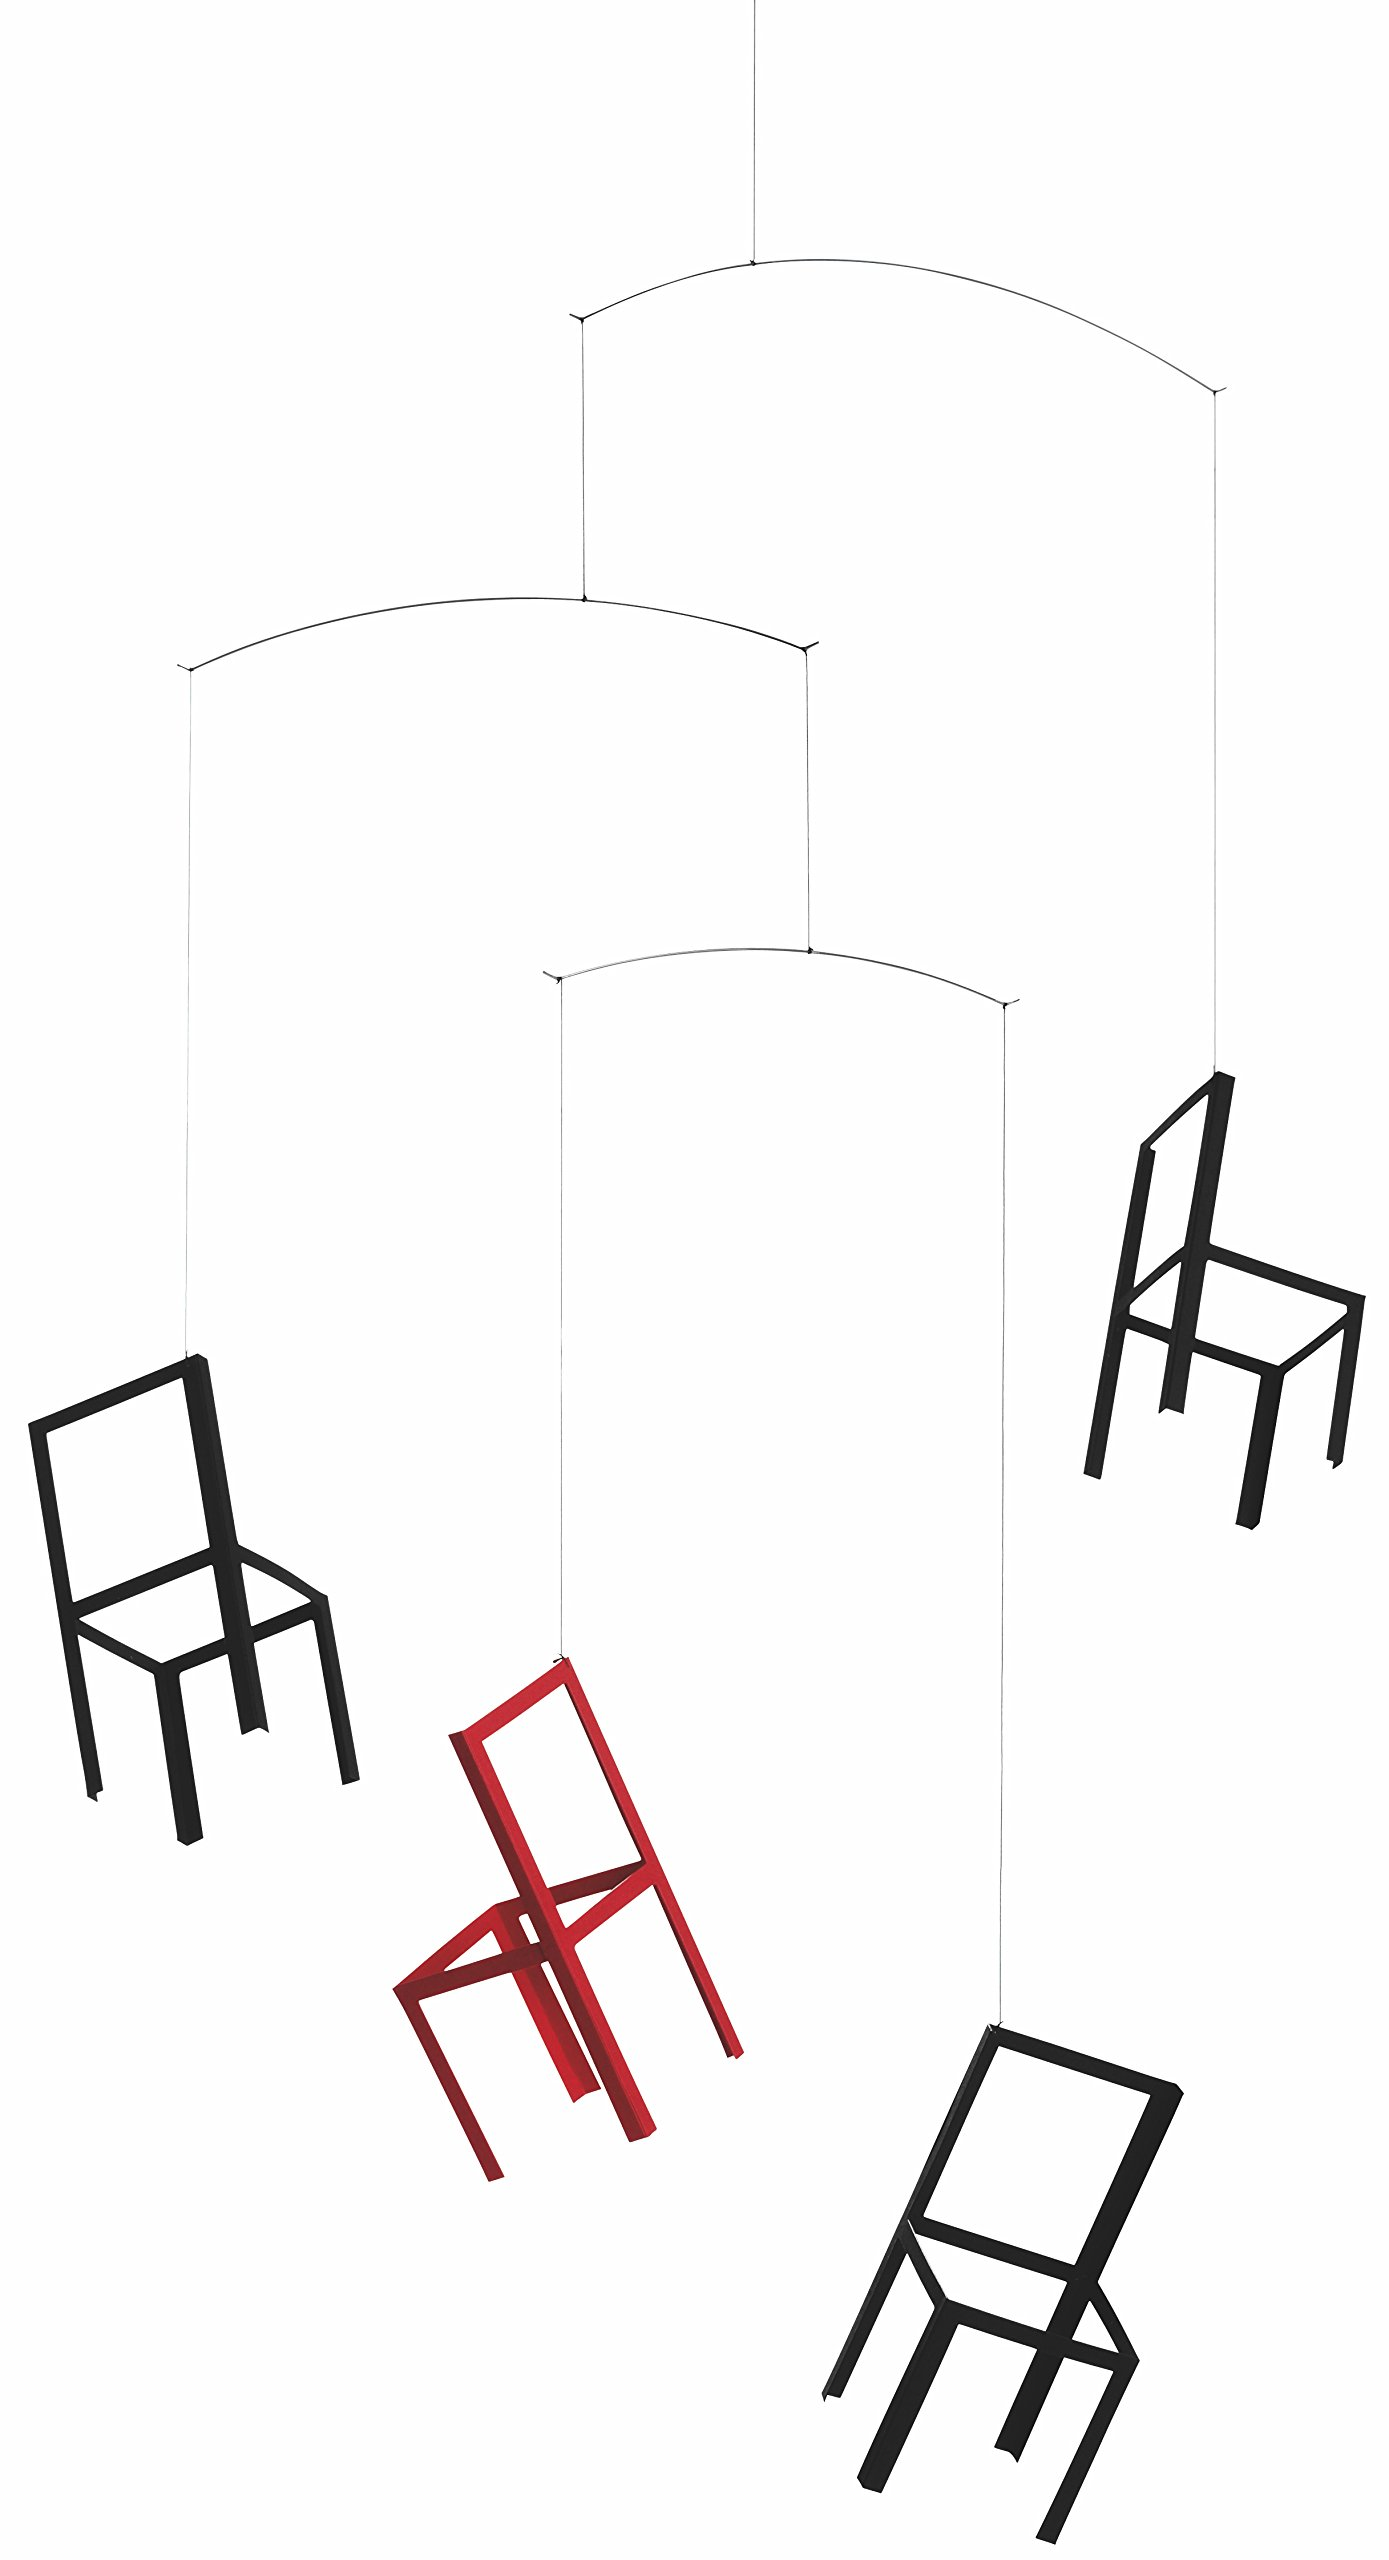 Flensted Mobiles Flying Chairs Hanging Mobile - 22 Inches Cardboard